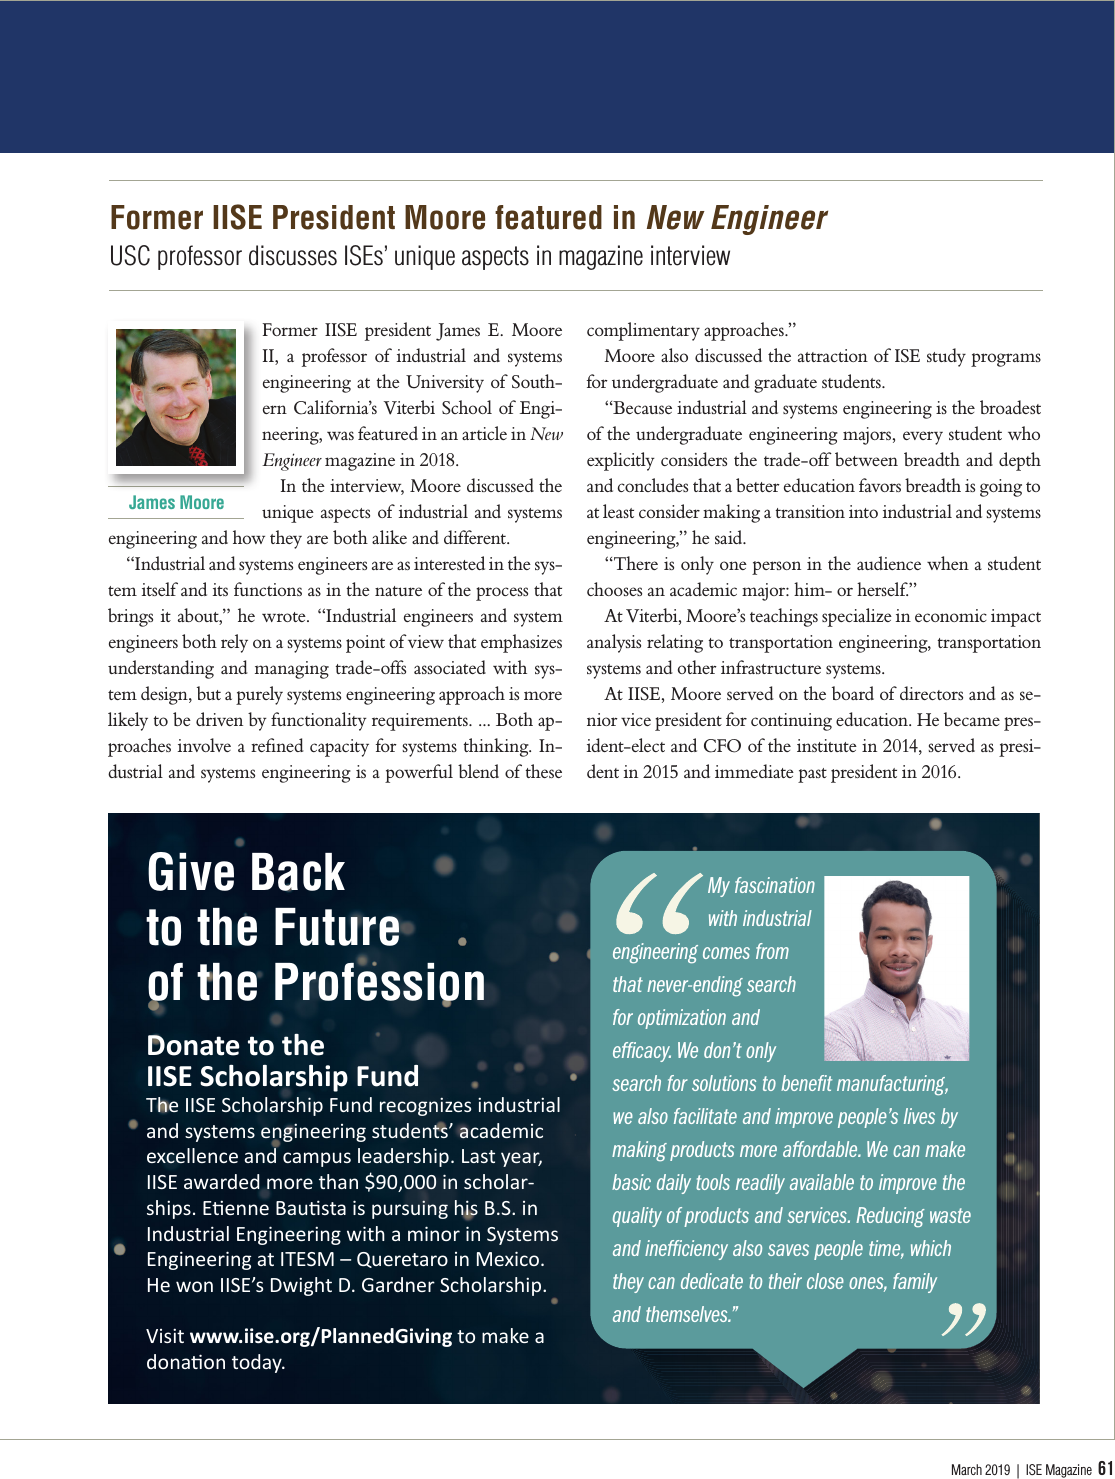 This month in IISE news